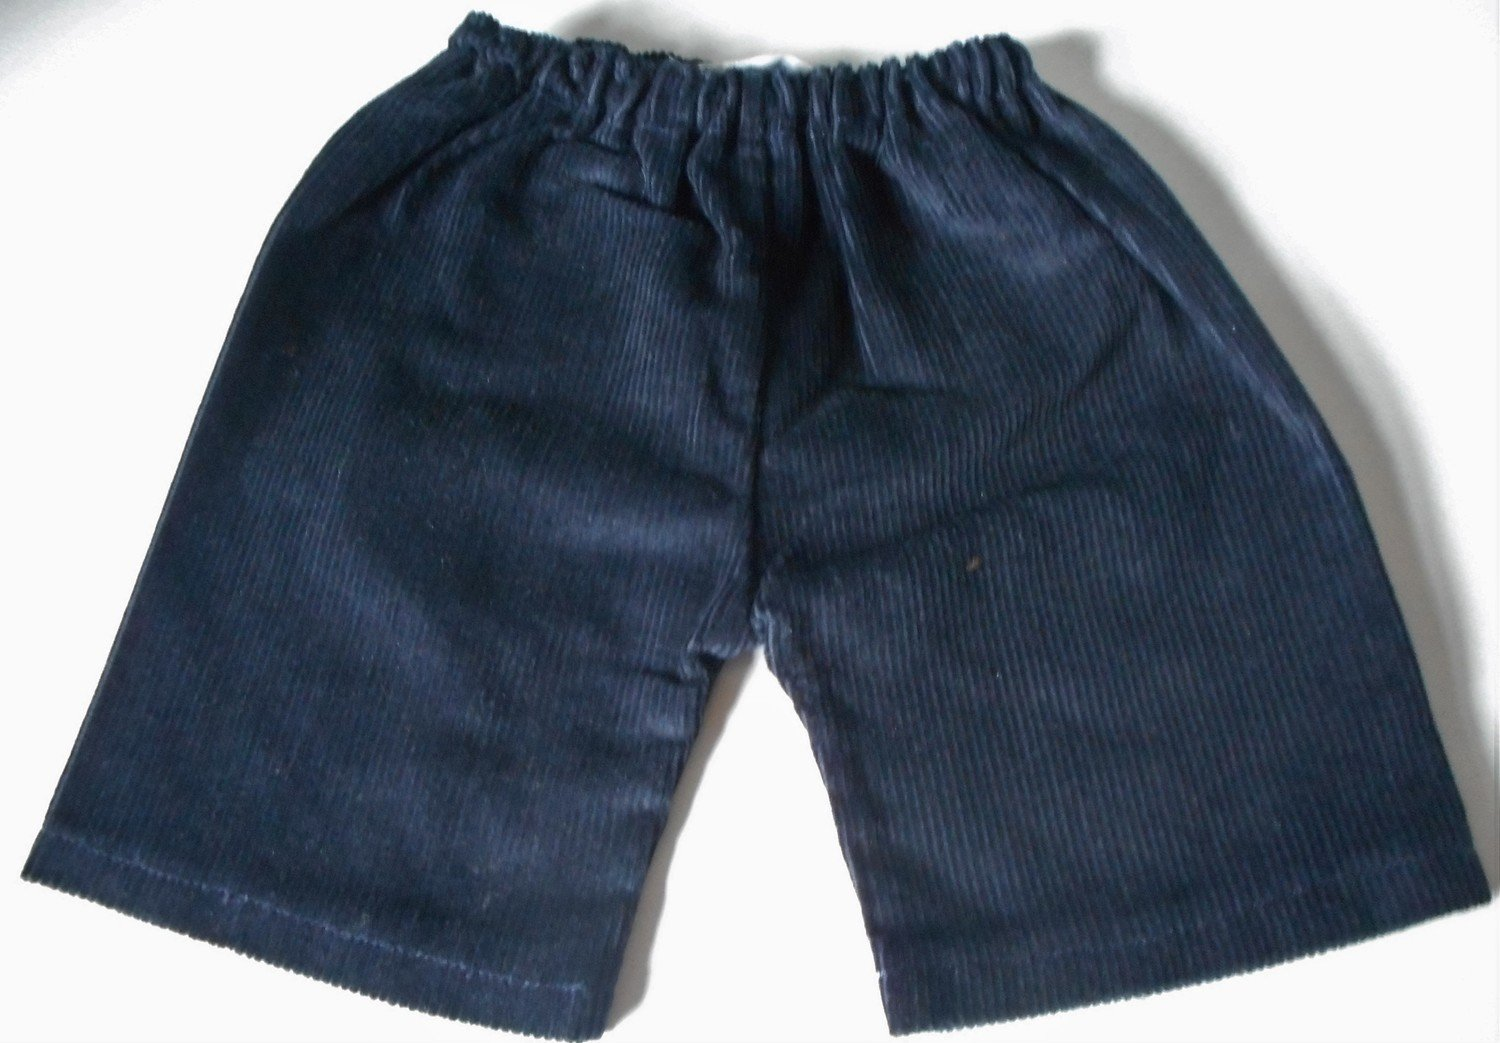 Trousers with back pockets - dark navy